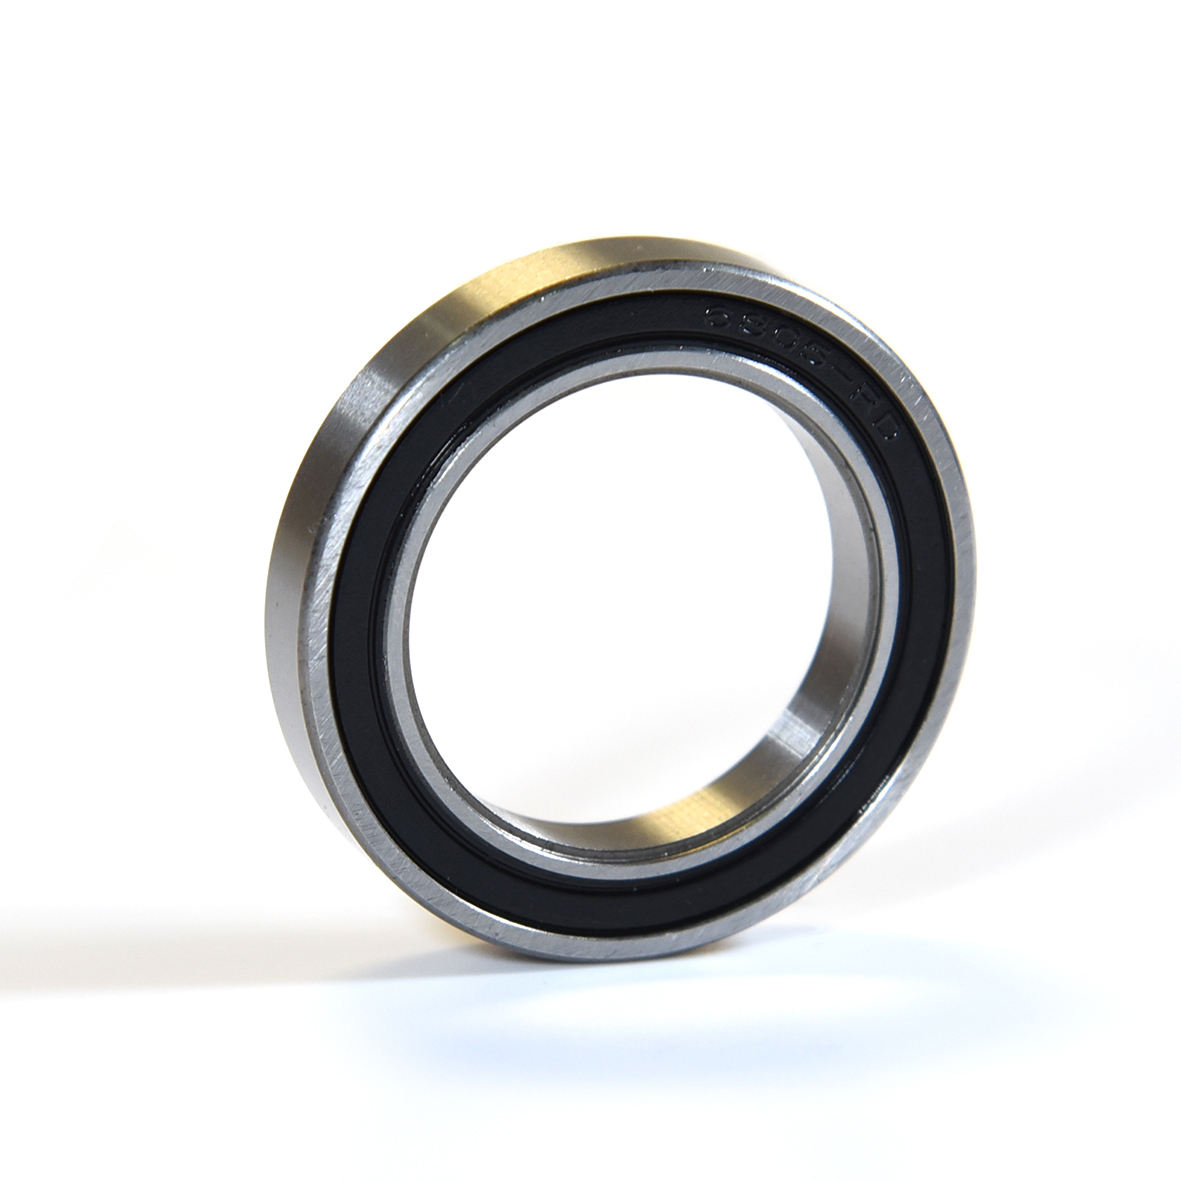 6700 6800 6804 6805 6902 6905 ZZ 2RS Single Row Thin Section Wall Ball Bearing for Bike Bearing